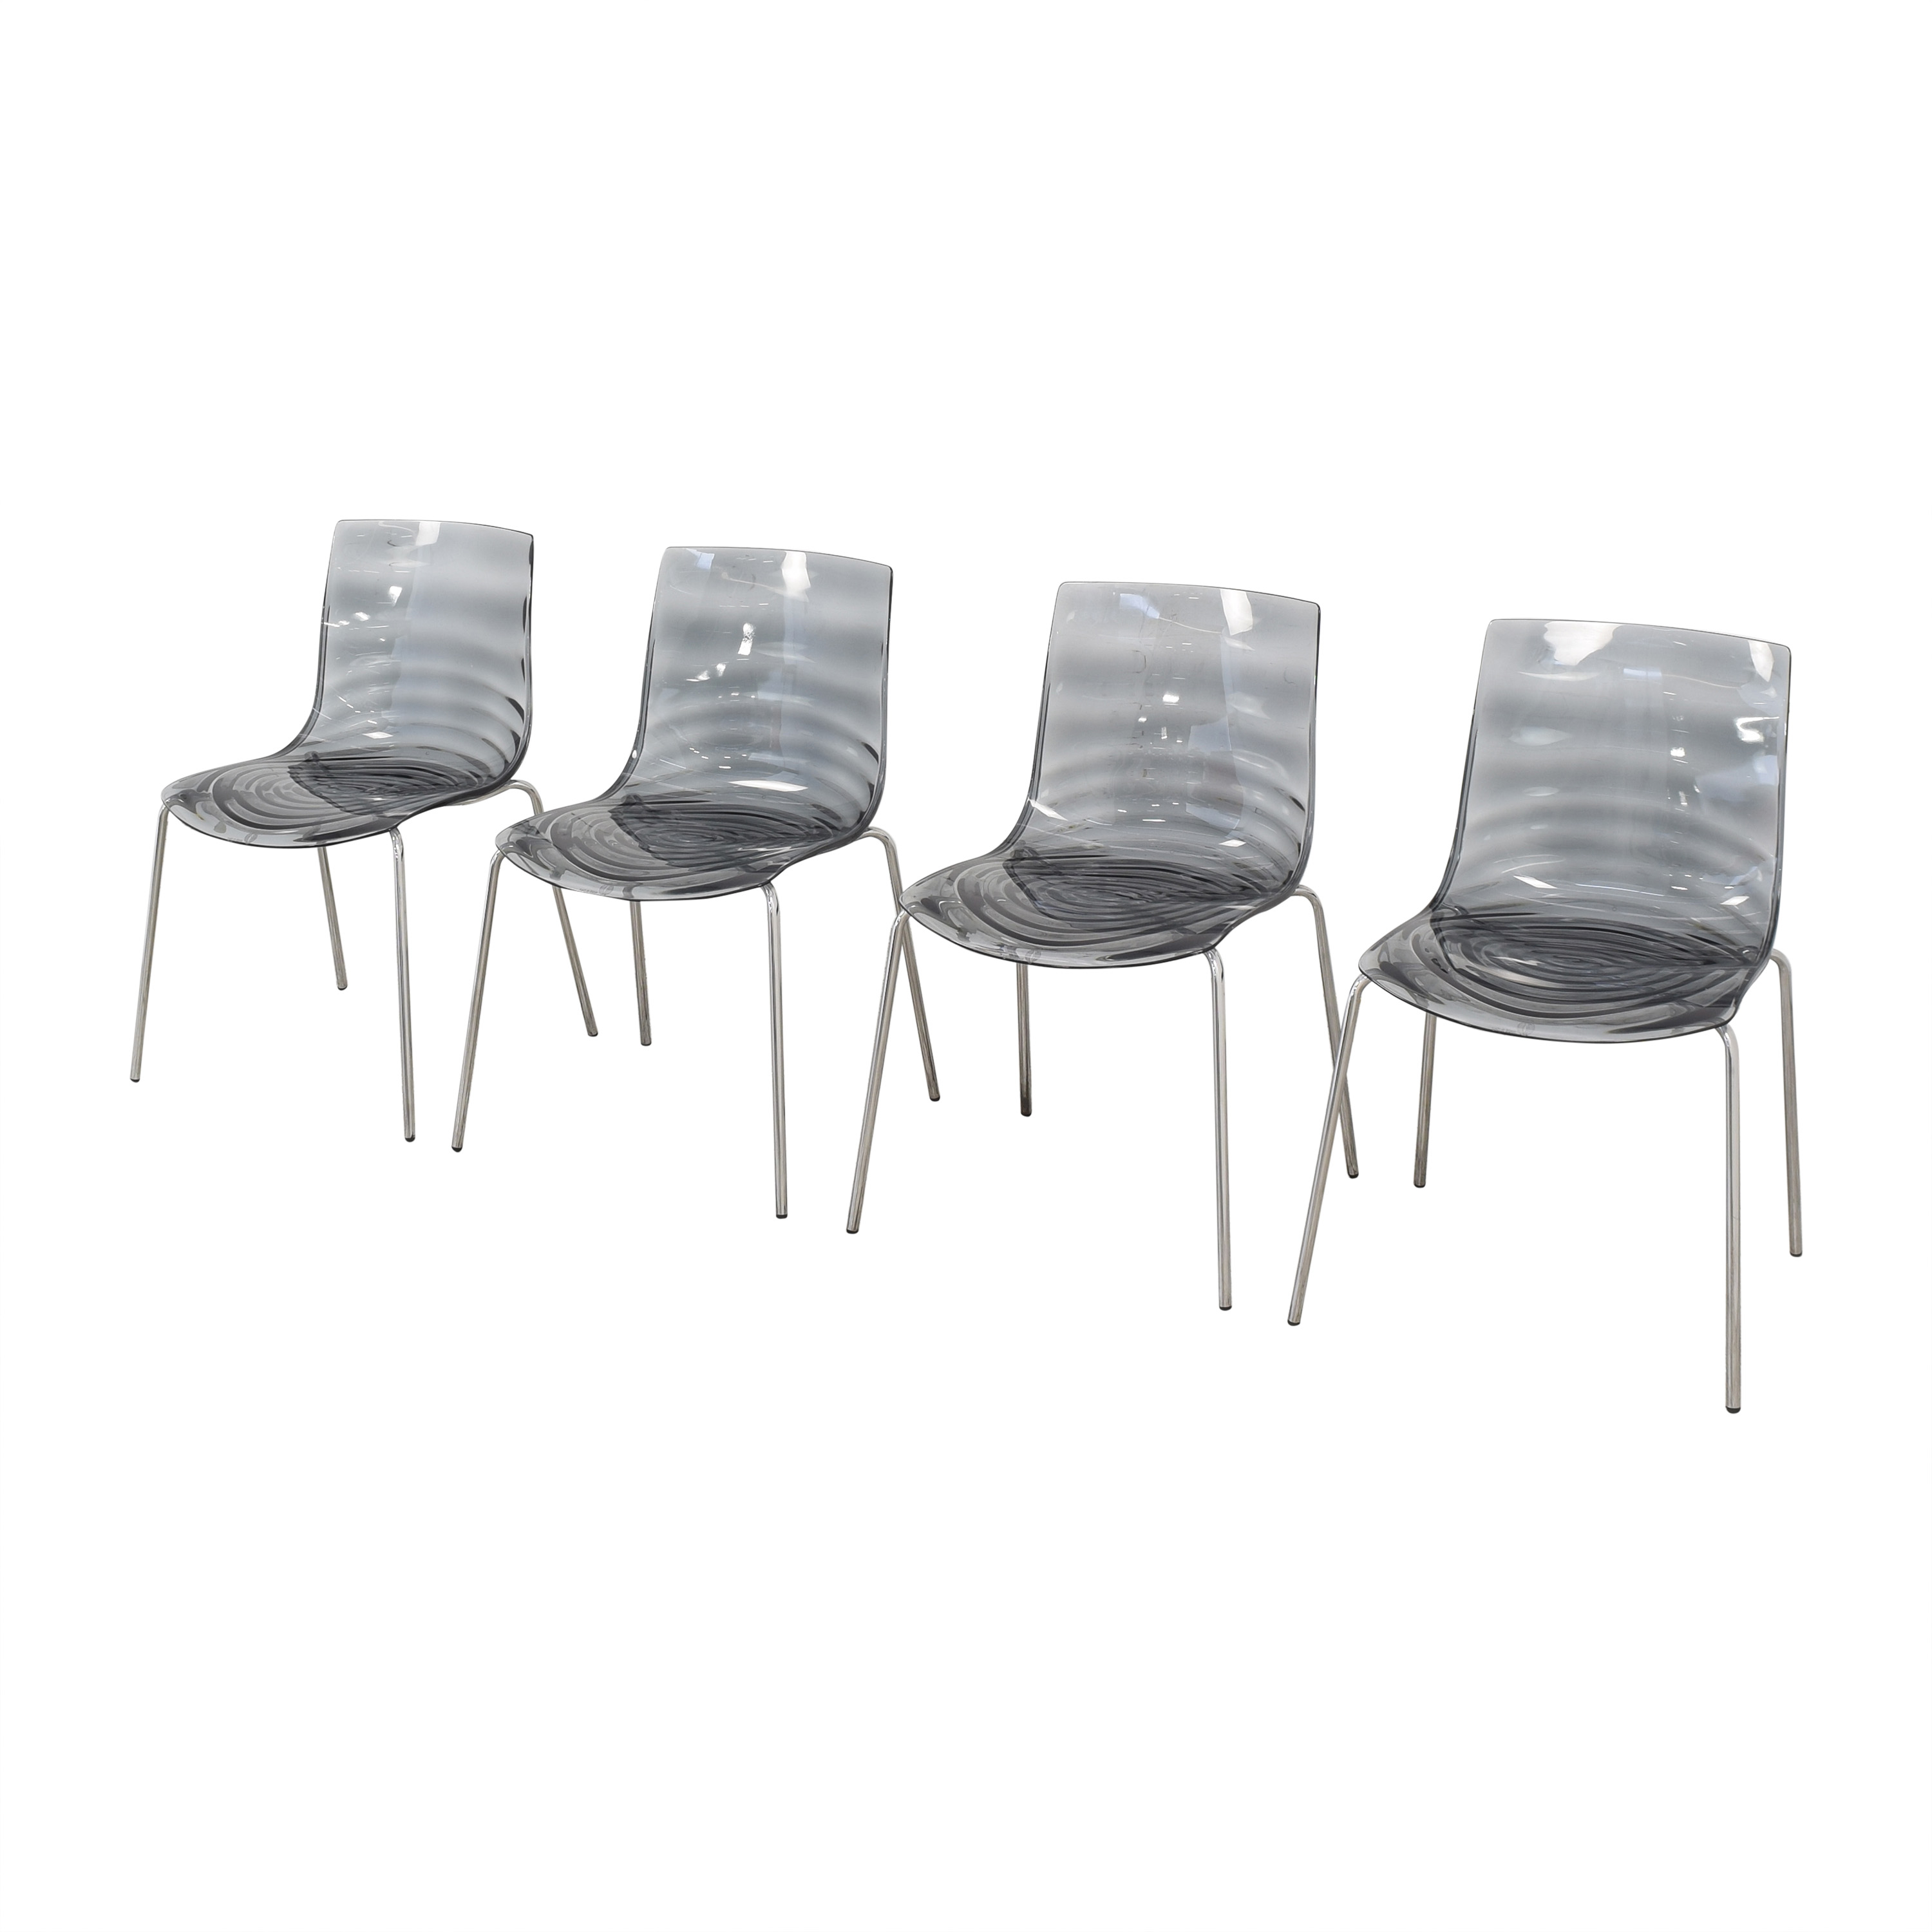 buy Calligaris Connubia L'Eau Dining Chairs Calligaris Chairs